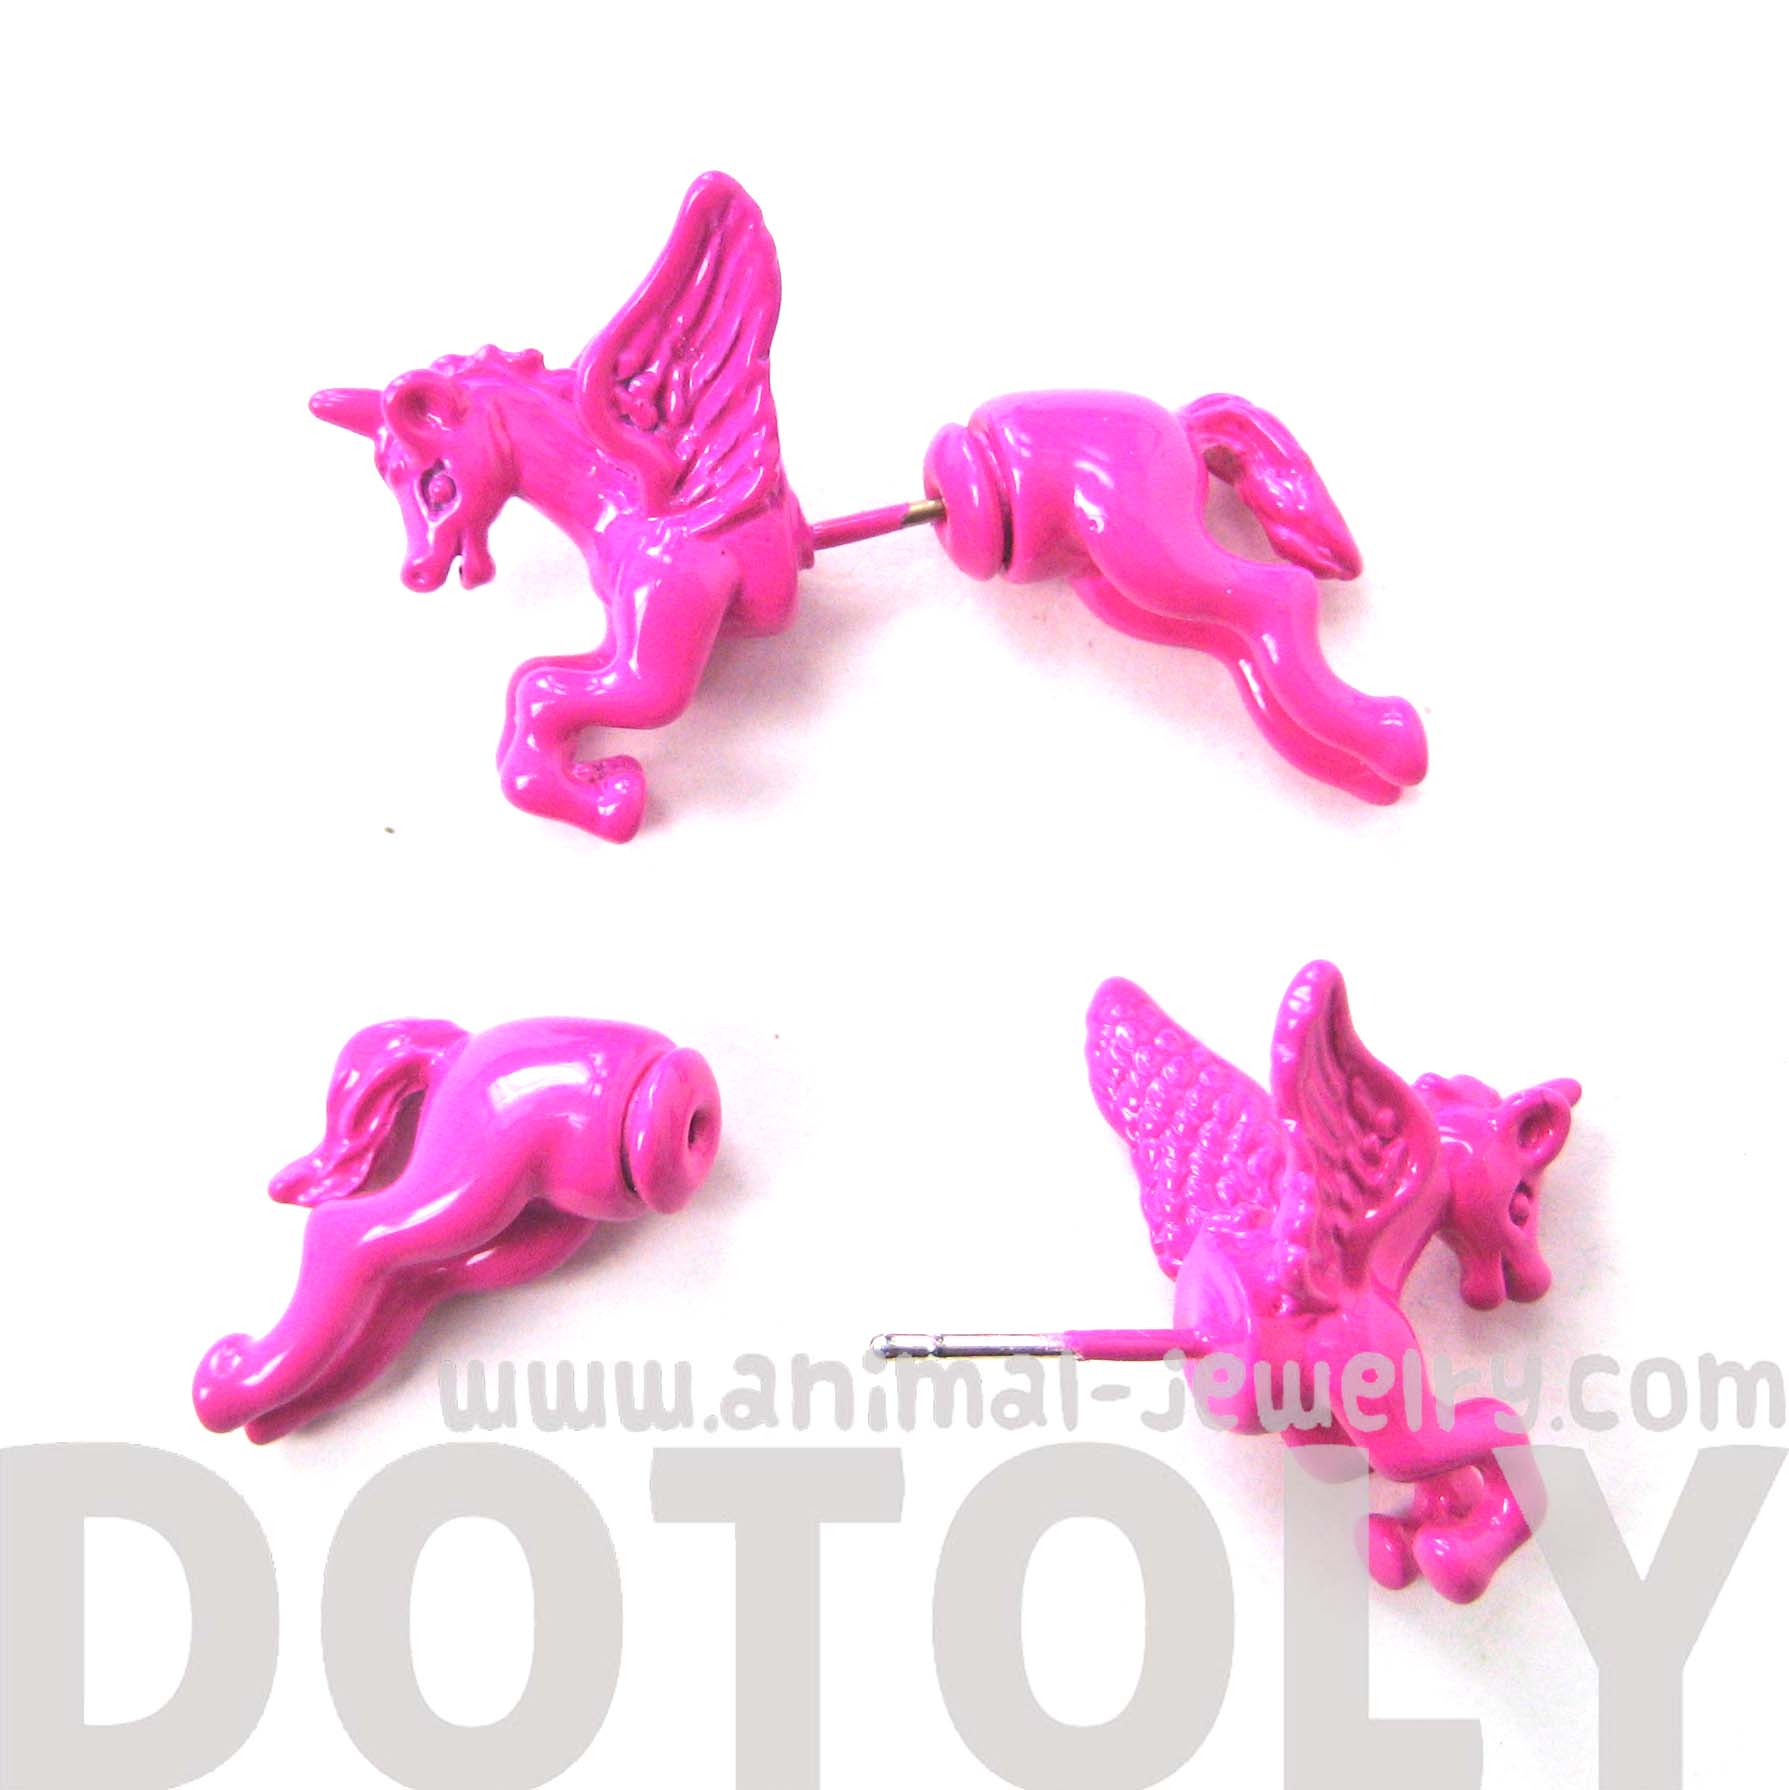 fake-gauge-earrings-unicorn-horse-animal-faux-plug-stud-earrings-in-bright-pink